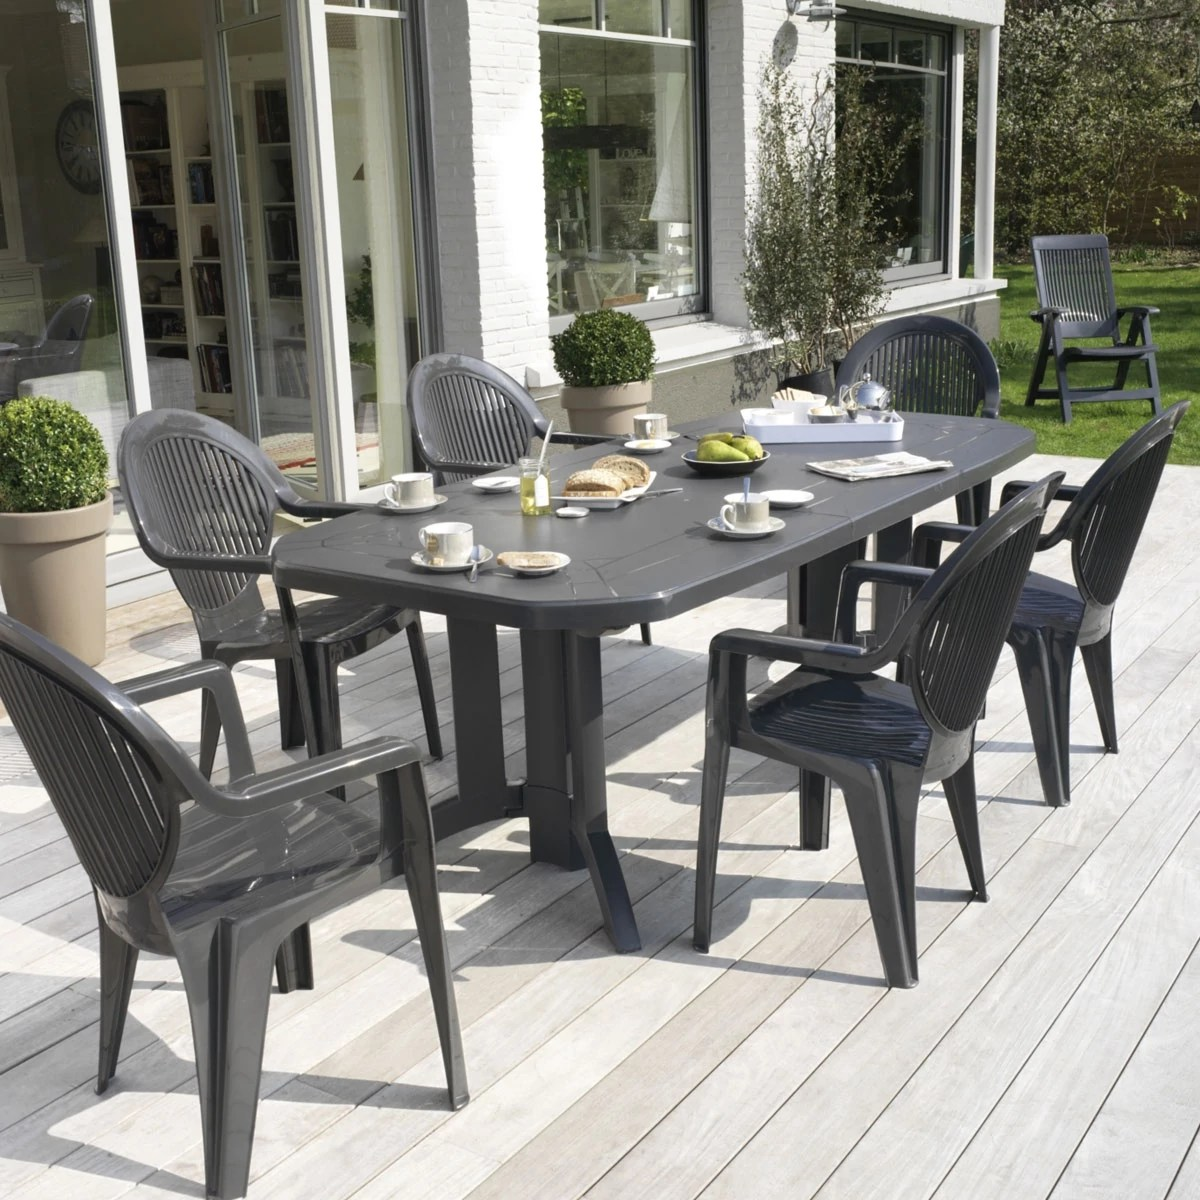 Salon De Jardin Vega Table De Jardin Ovale Design Grosfillex Vega 220x100x72